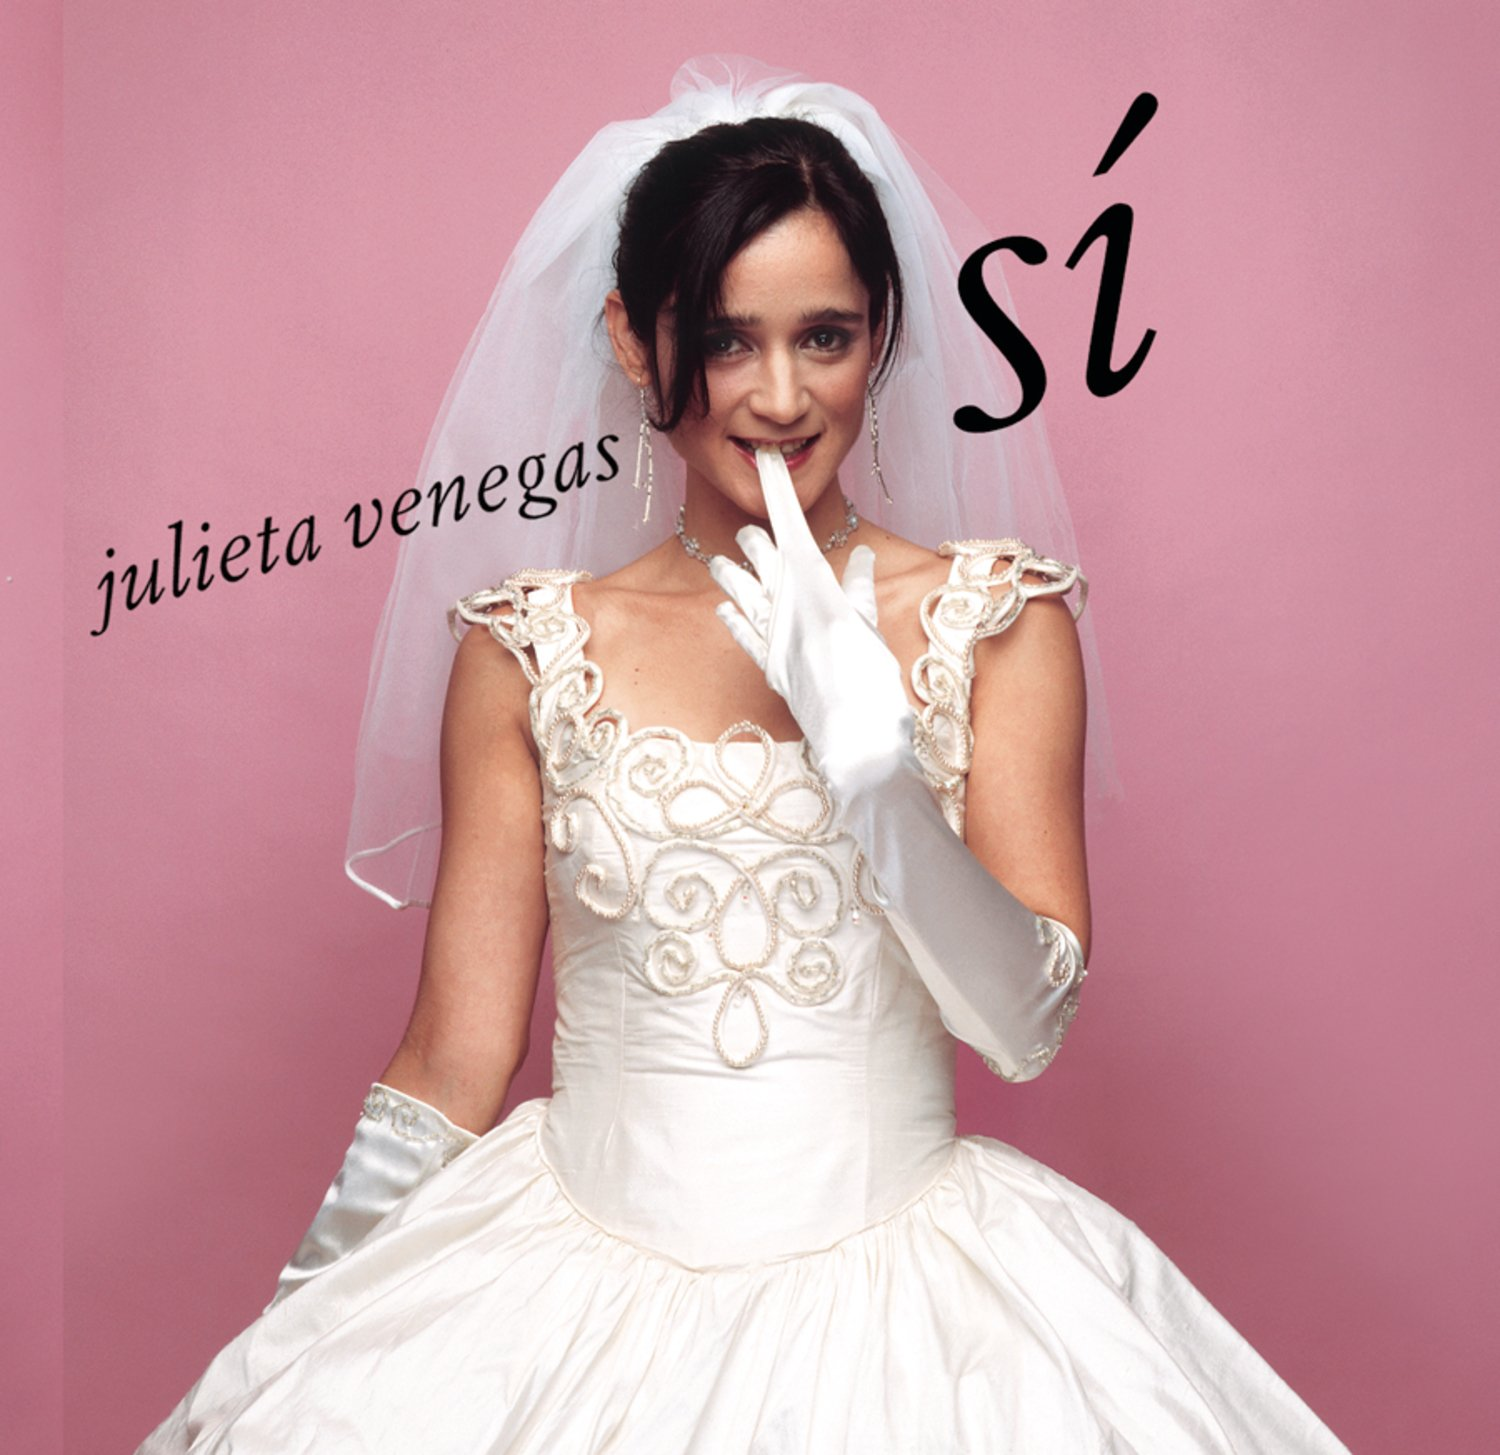 Julieta Venegas - Sí - Amazon.com Music